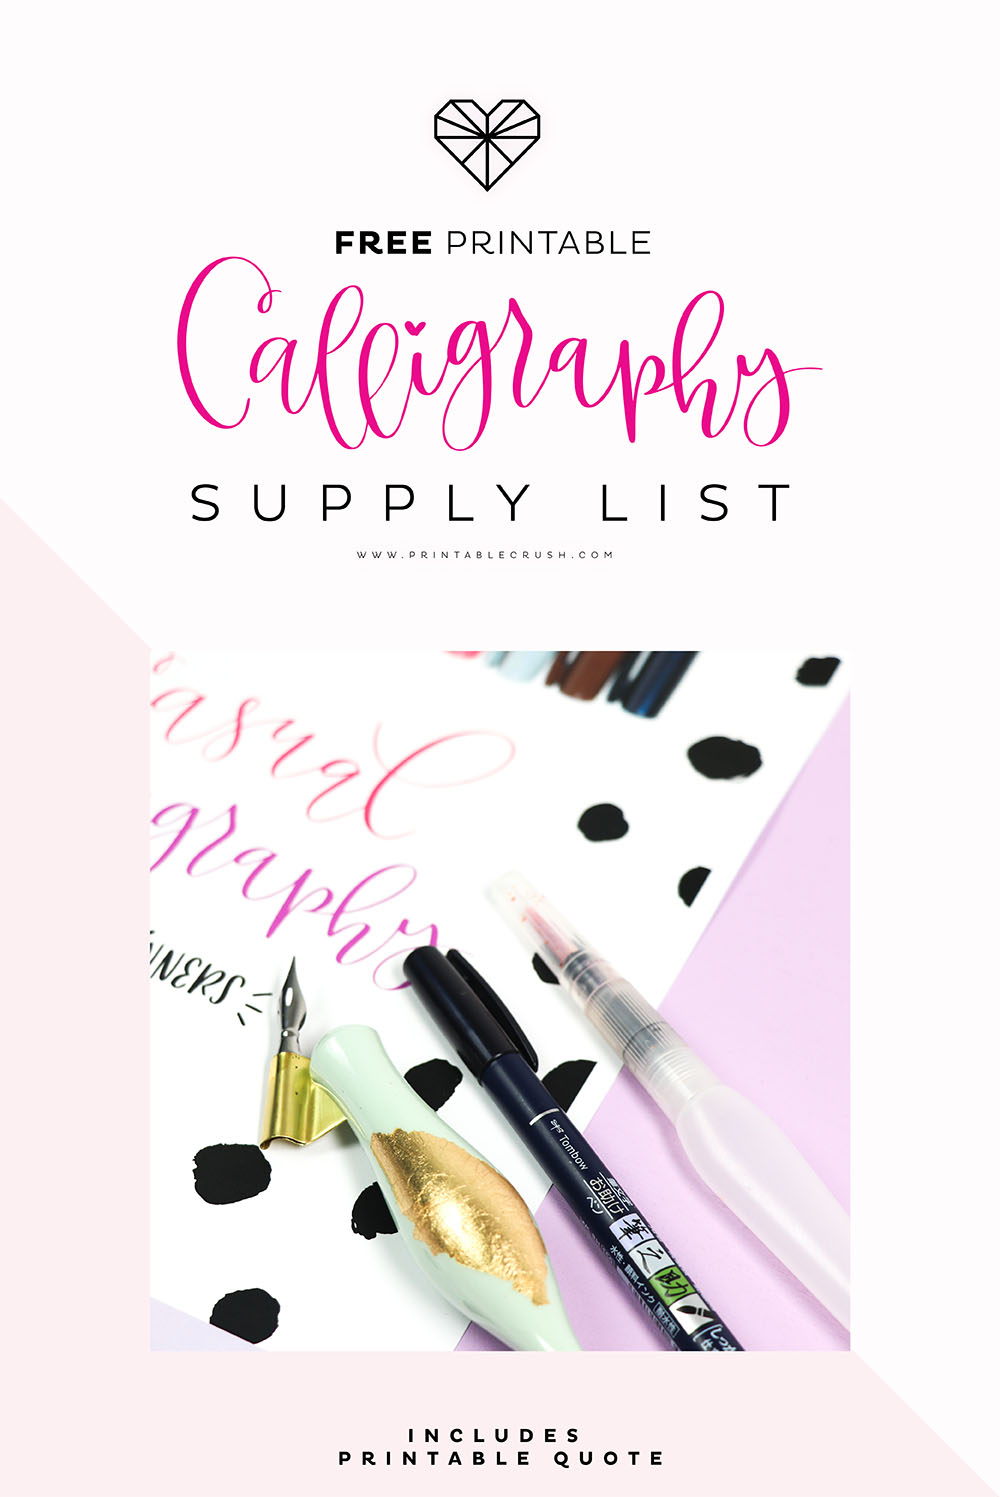 Download this FREE Casual Calligraphy Supply List to get the BEST calligraphy pens, brush pens, paper, and calligraphy accessories.